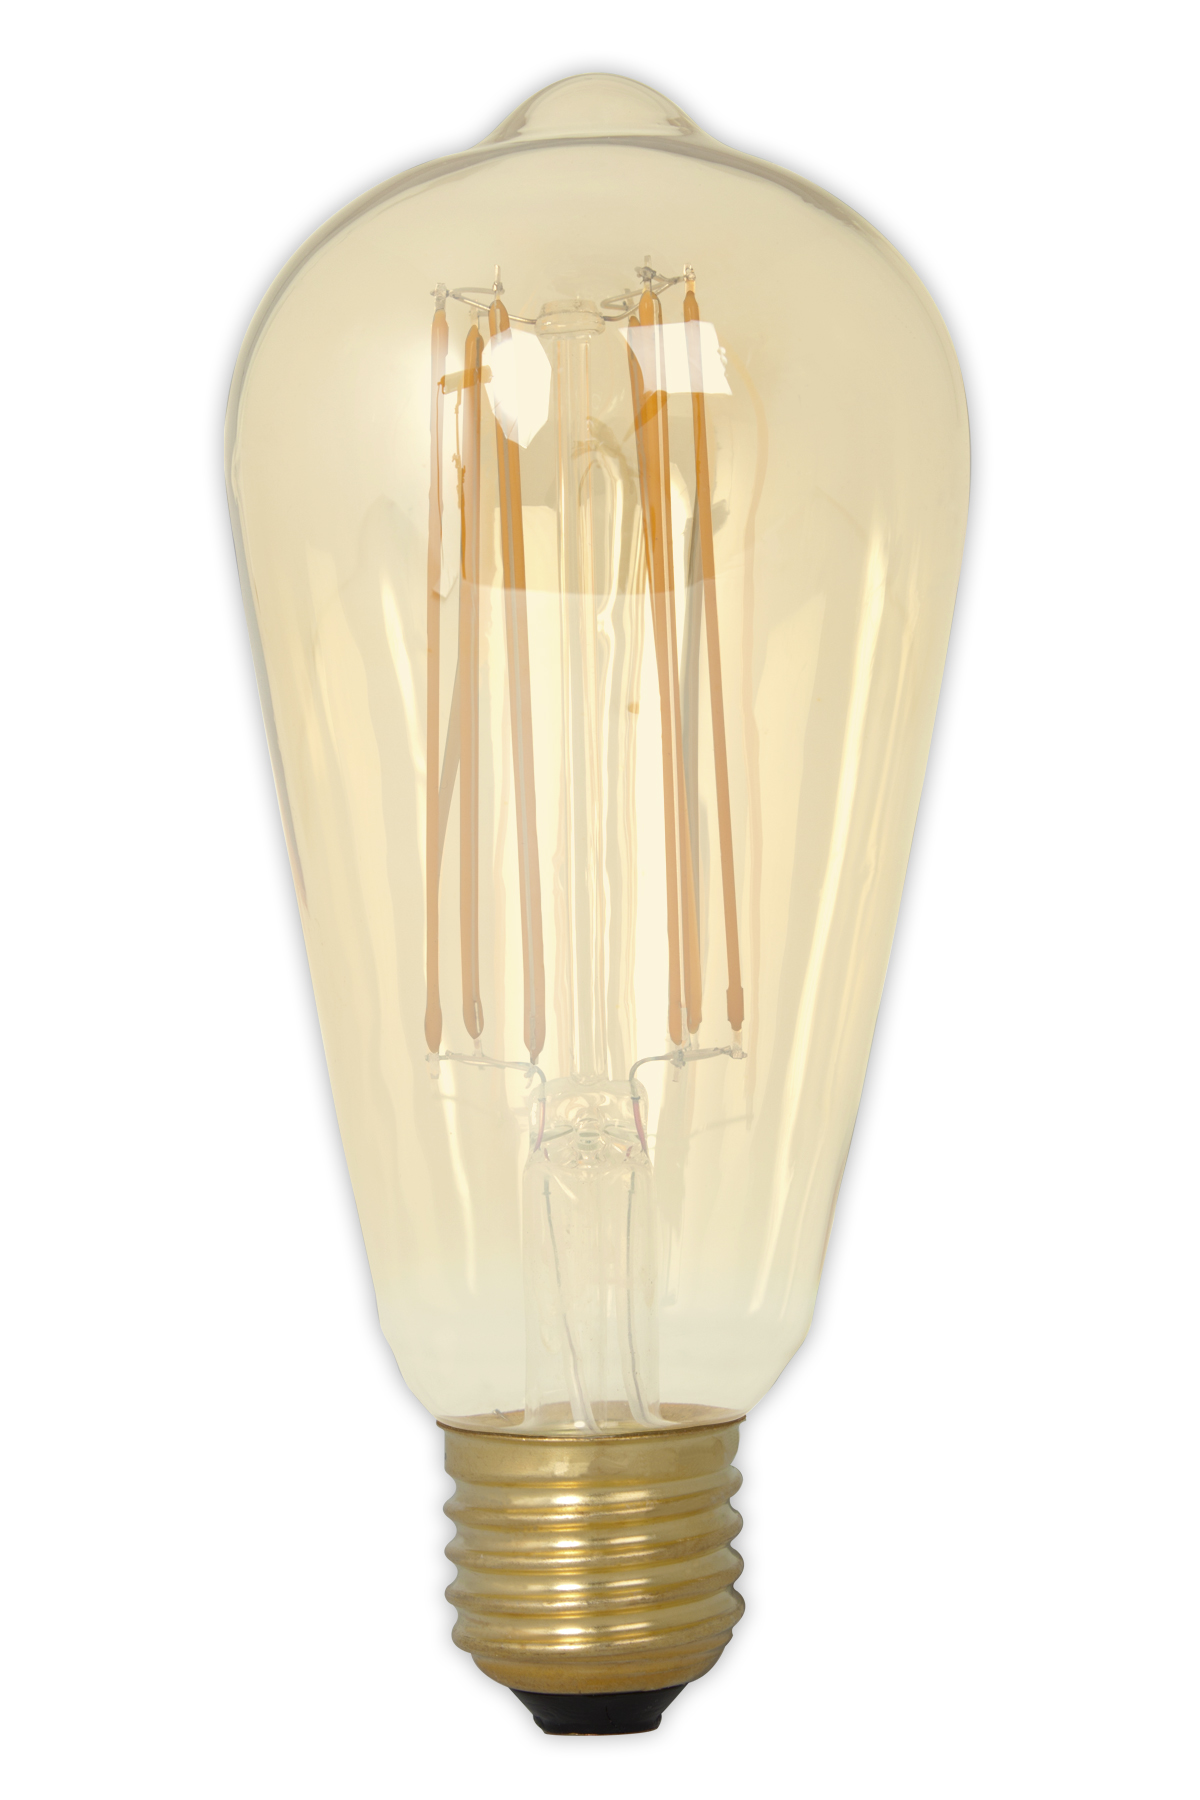 Rustikalamp LED filament goud 4,0W (vervangt 40W) grote fitting E27